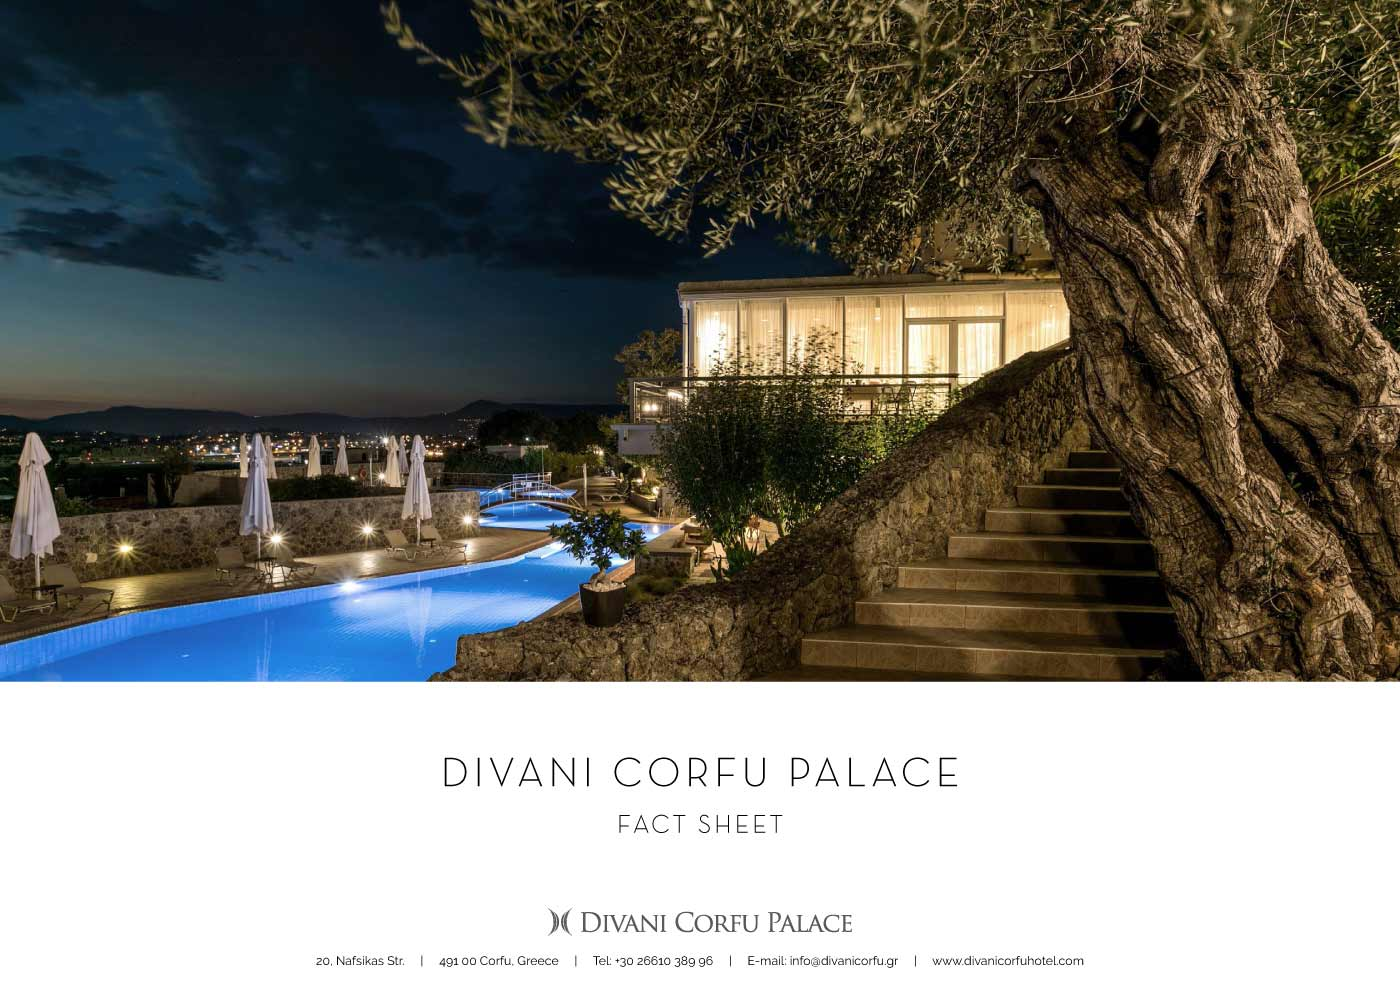 Divani Corfu Palace - Fact Sheet